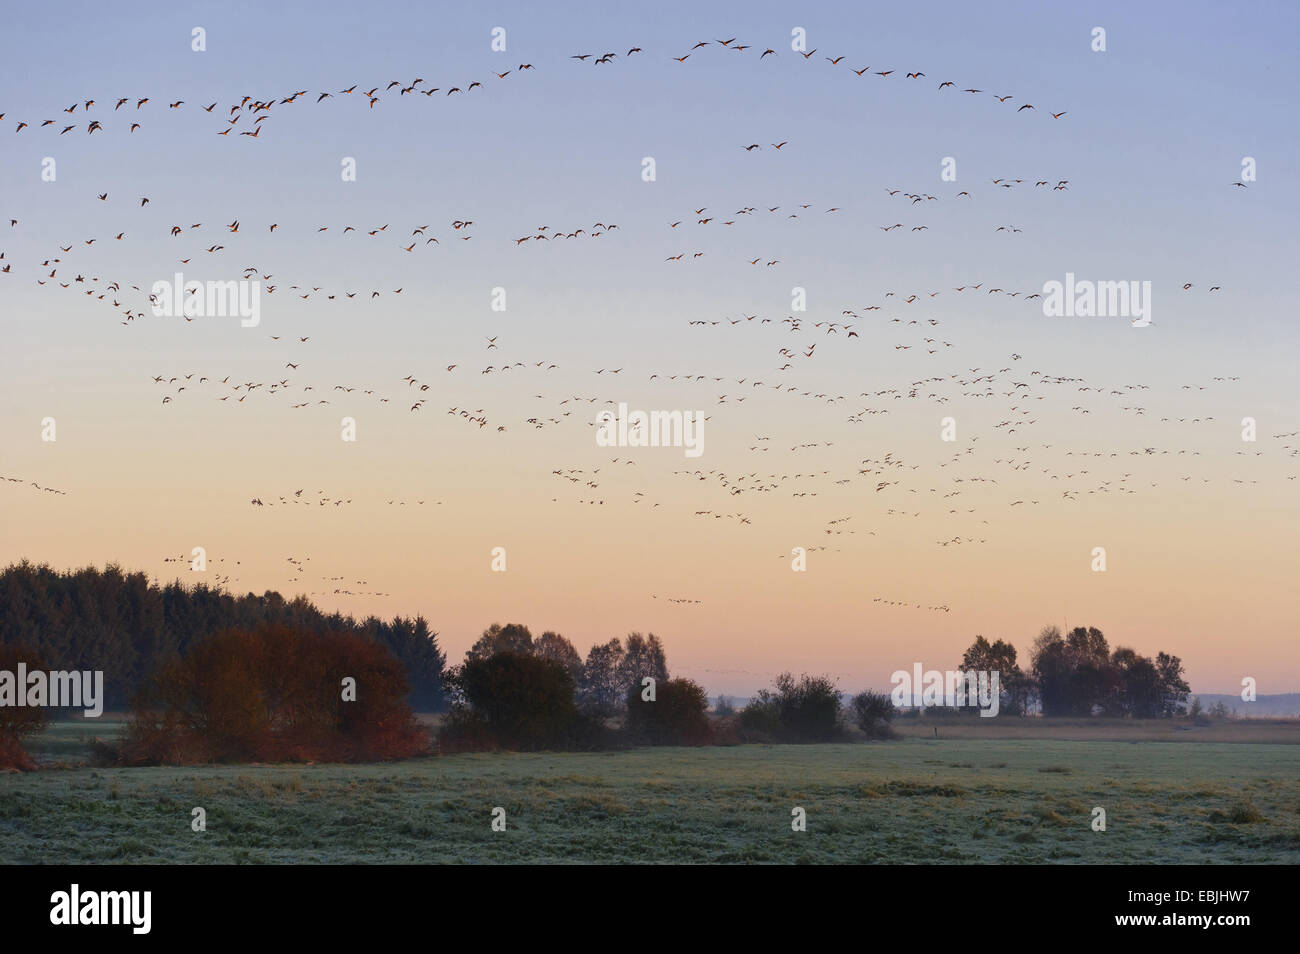 white-fronted goose (Anser albifrons), flocks of geese flying up over the moor, Germany, Lower Saxony, Rehdener - Stock Image